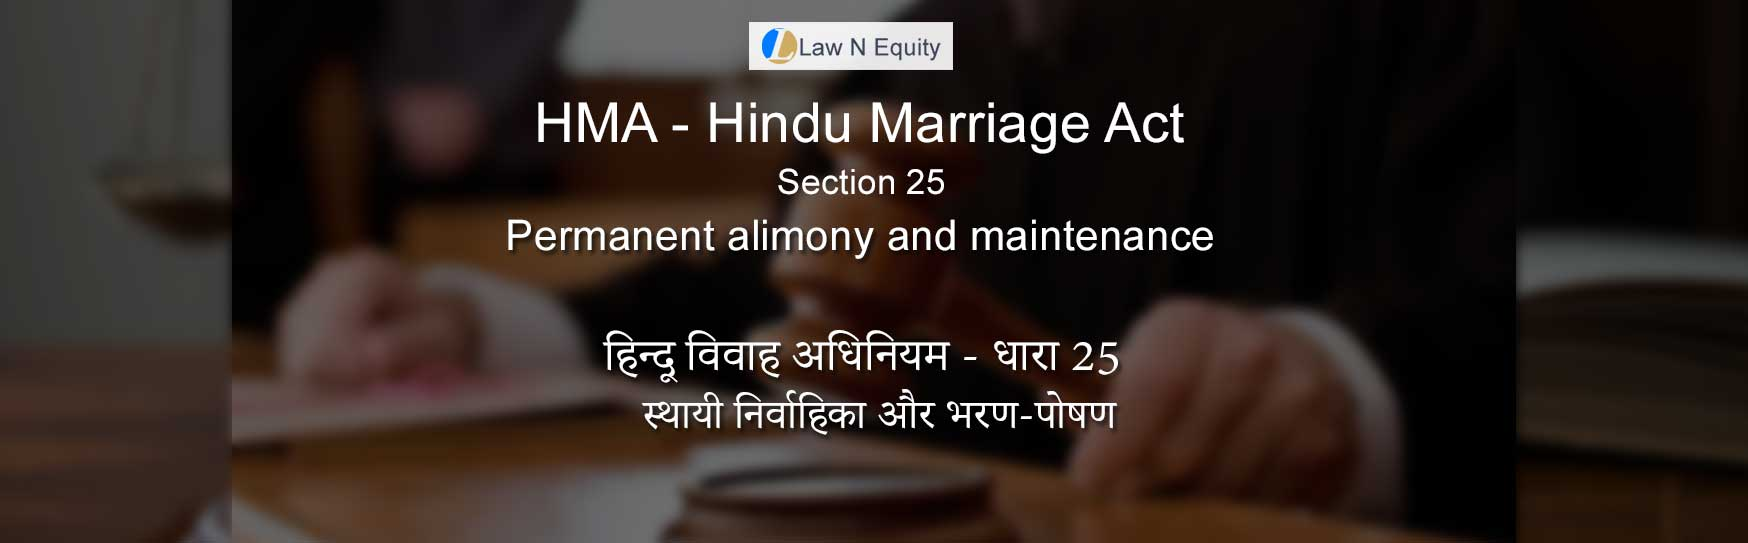 Hindu Marriage Act(HMA) Section 25